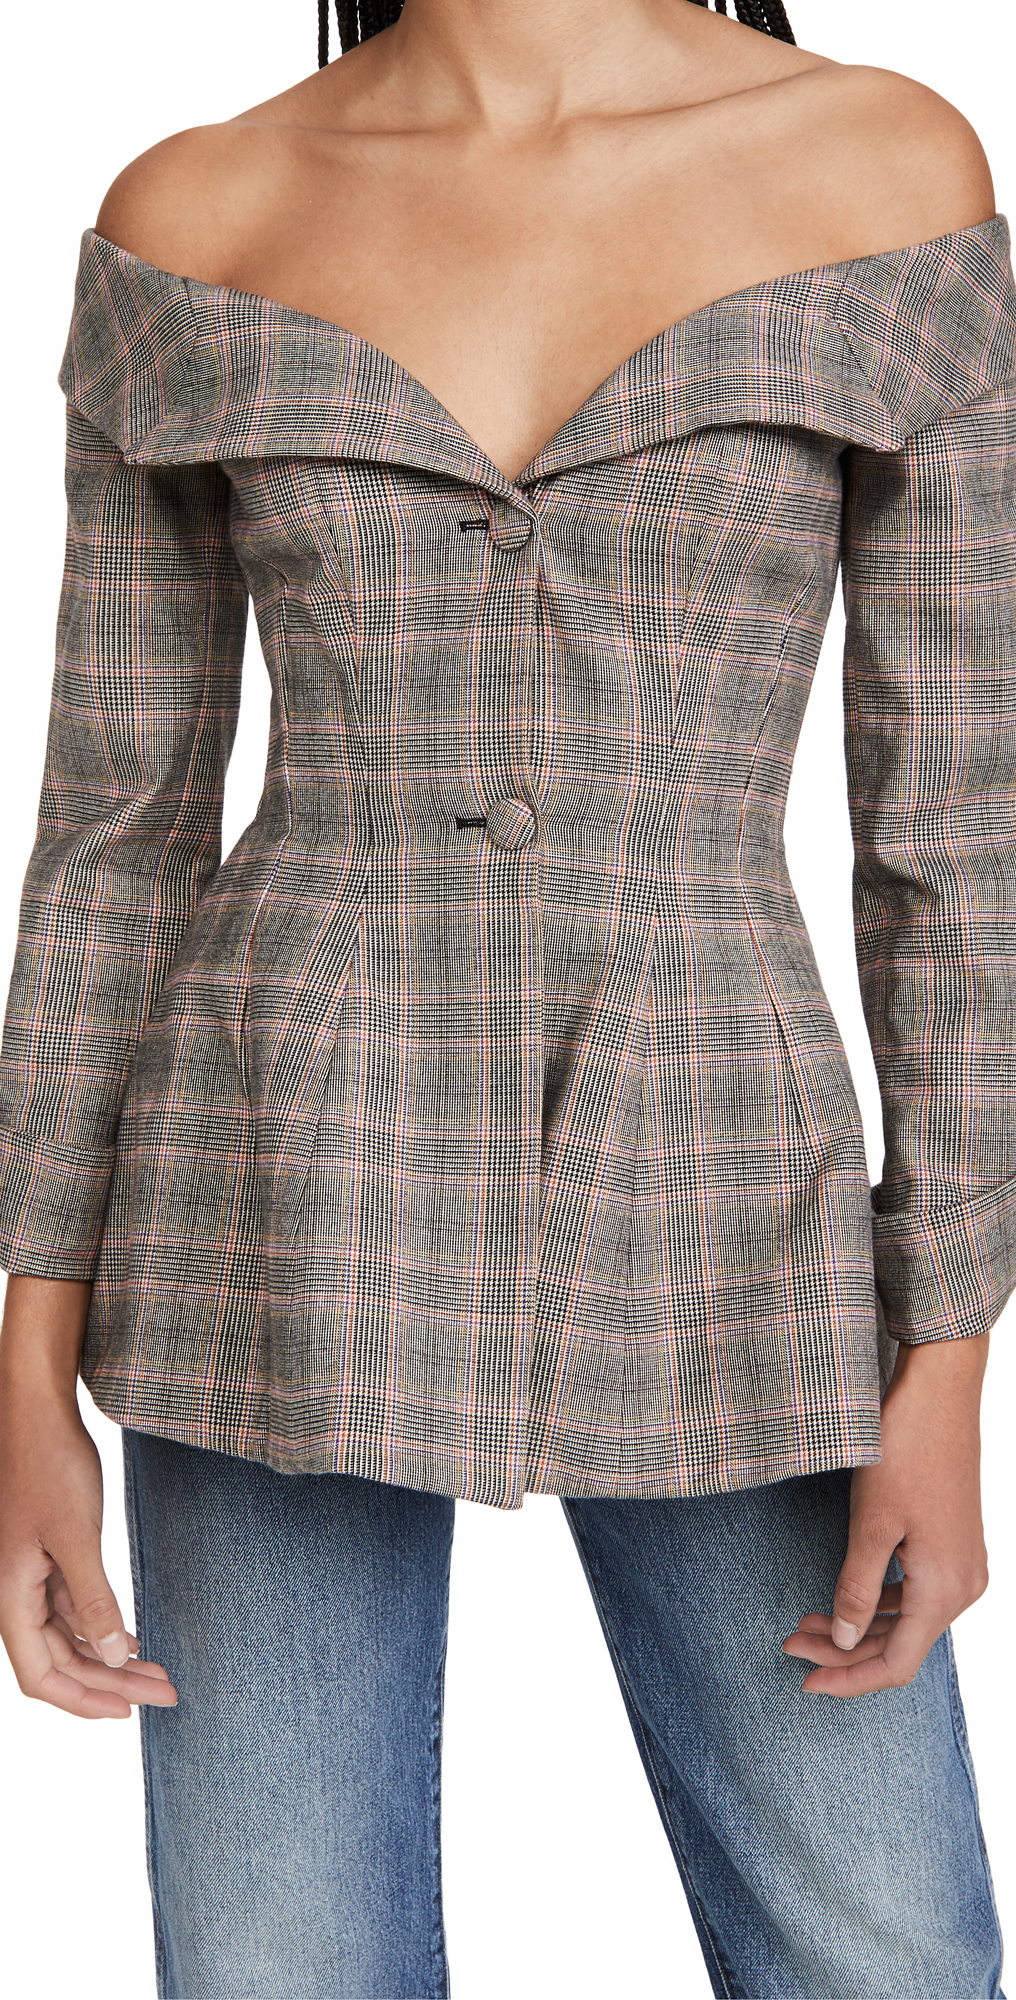 Brock Collection Ladies Woven Plaid Jacket